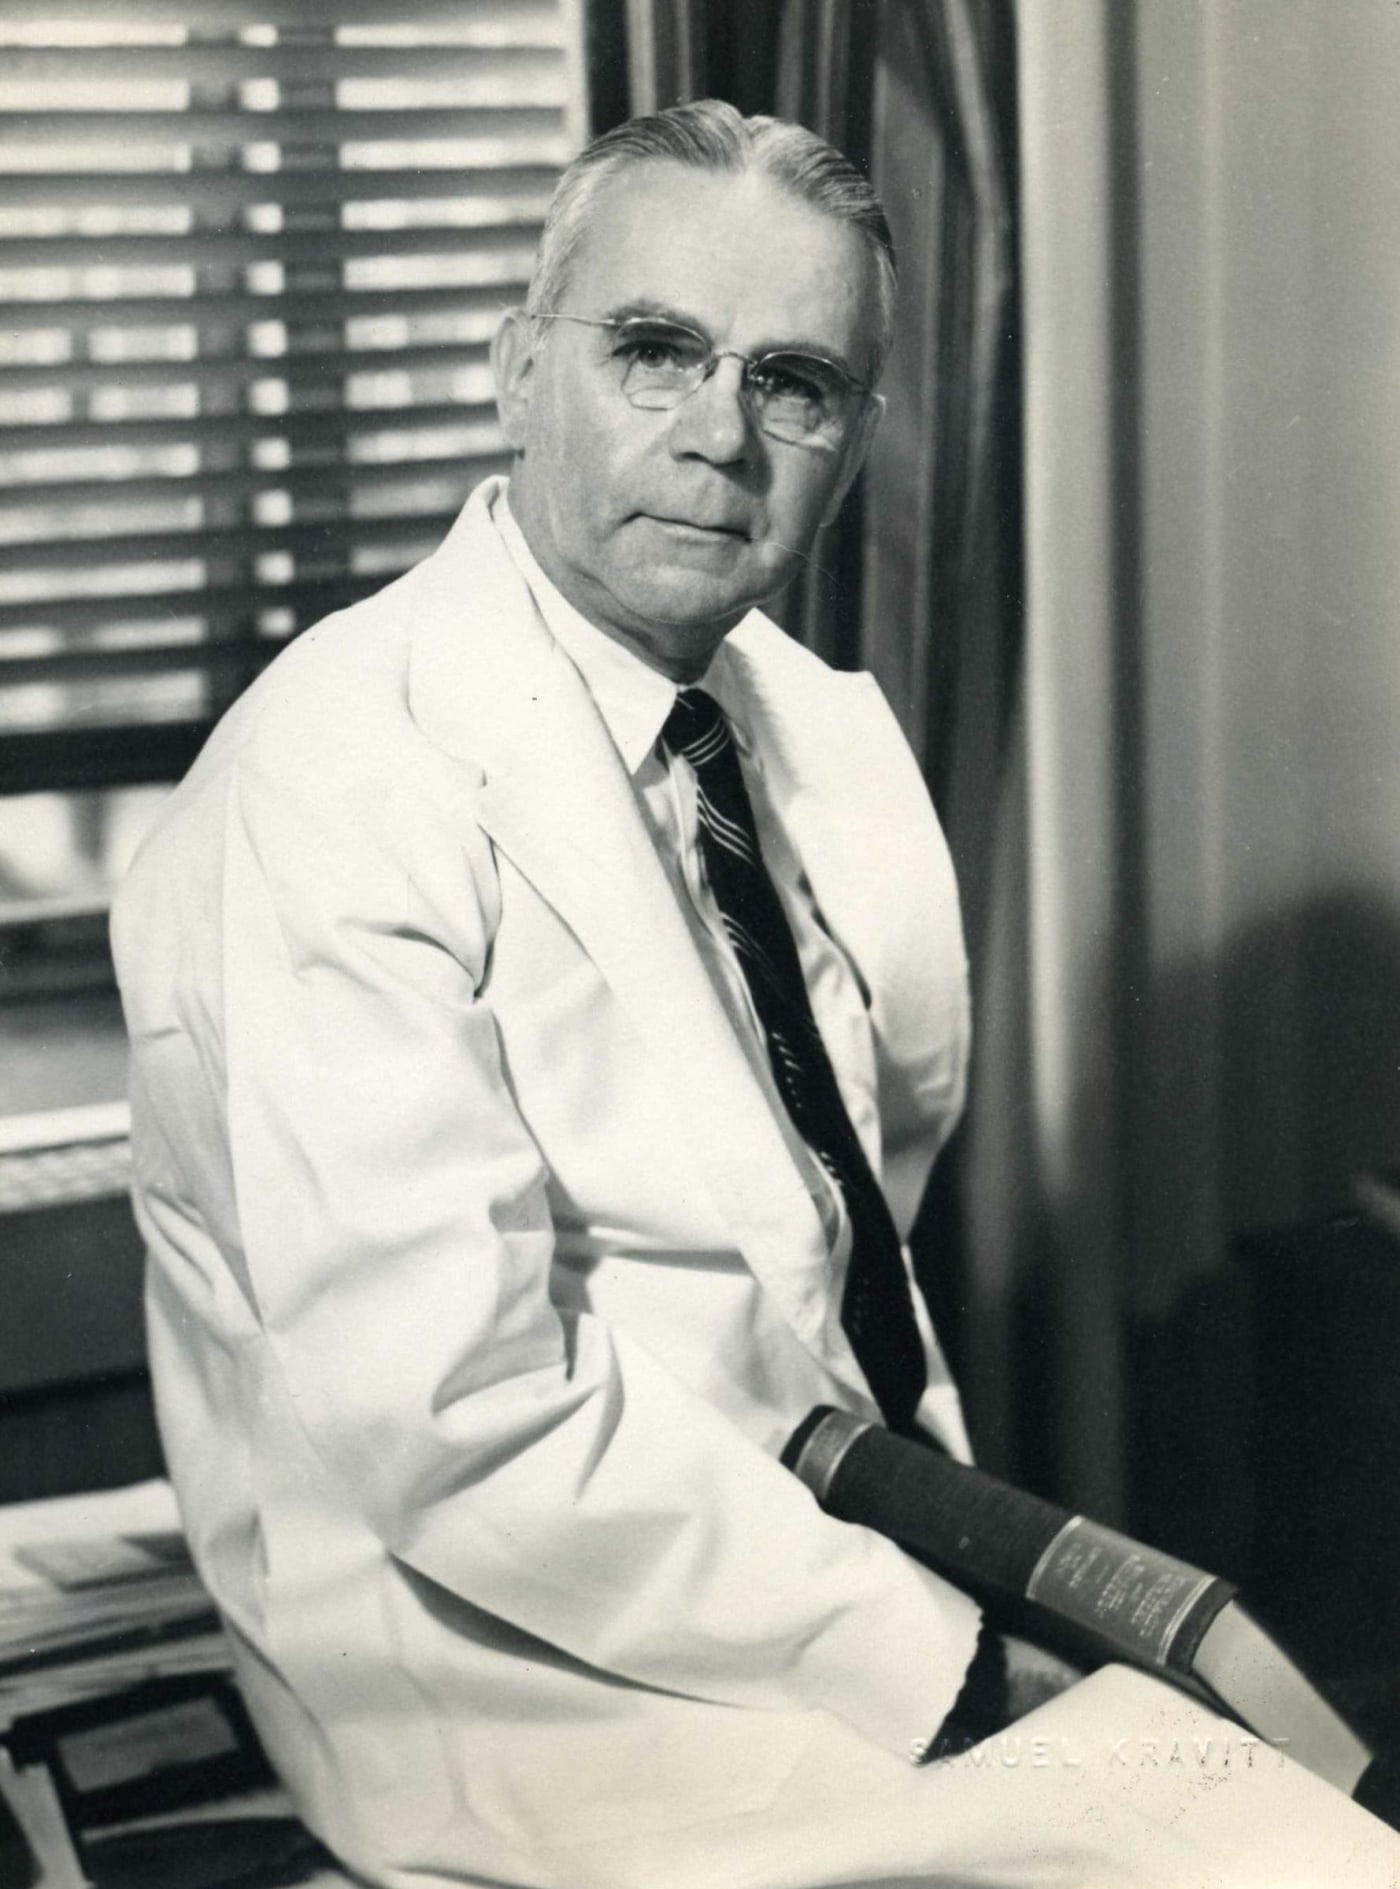 Gustaf E. Lindskog believed that a cancer patient might benefit from a new therapy for reducing tumors that his colleagues had developed.